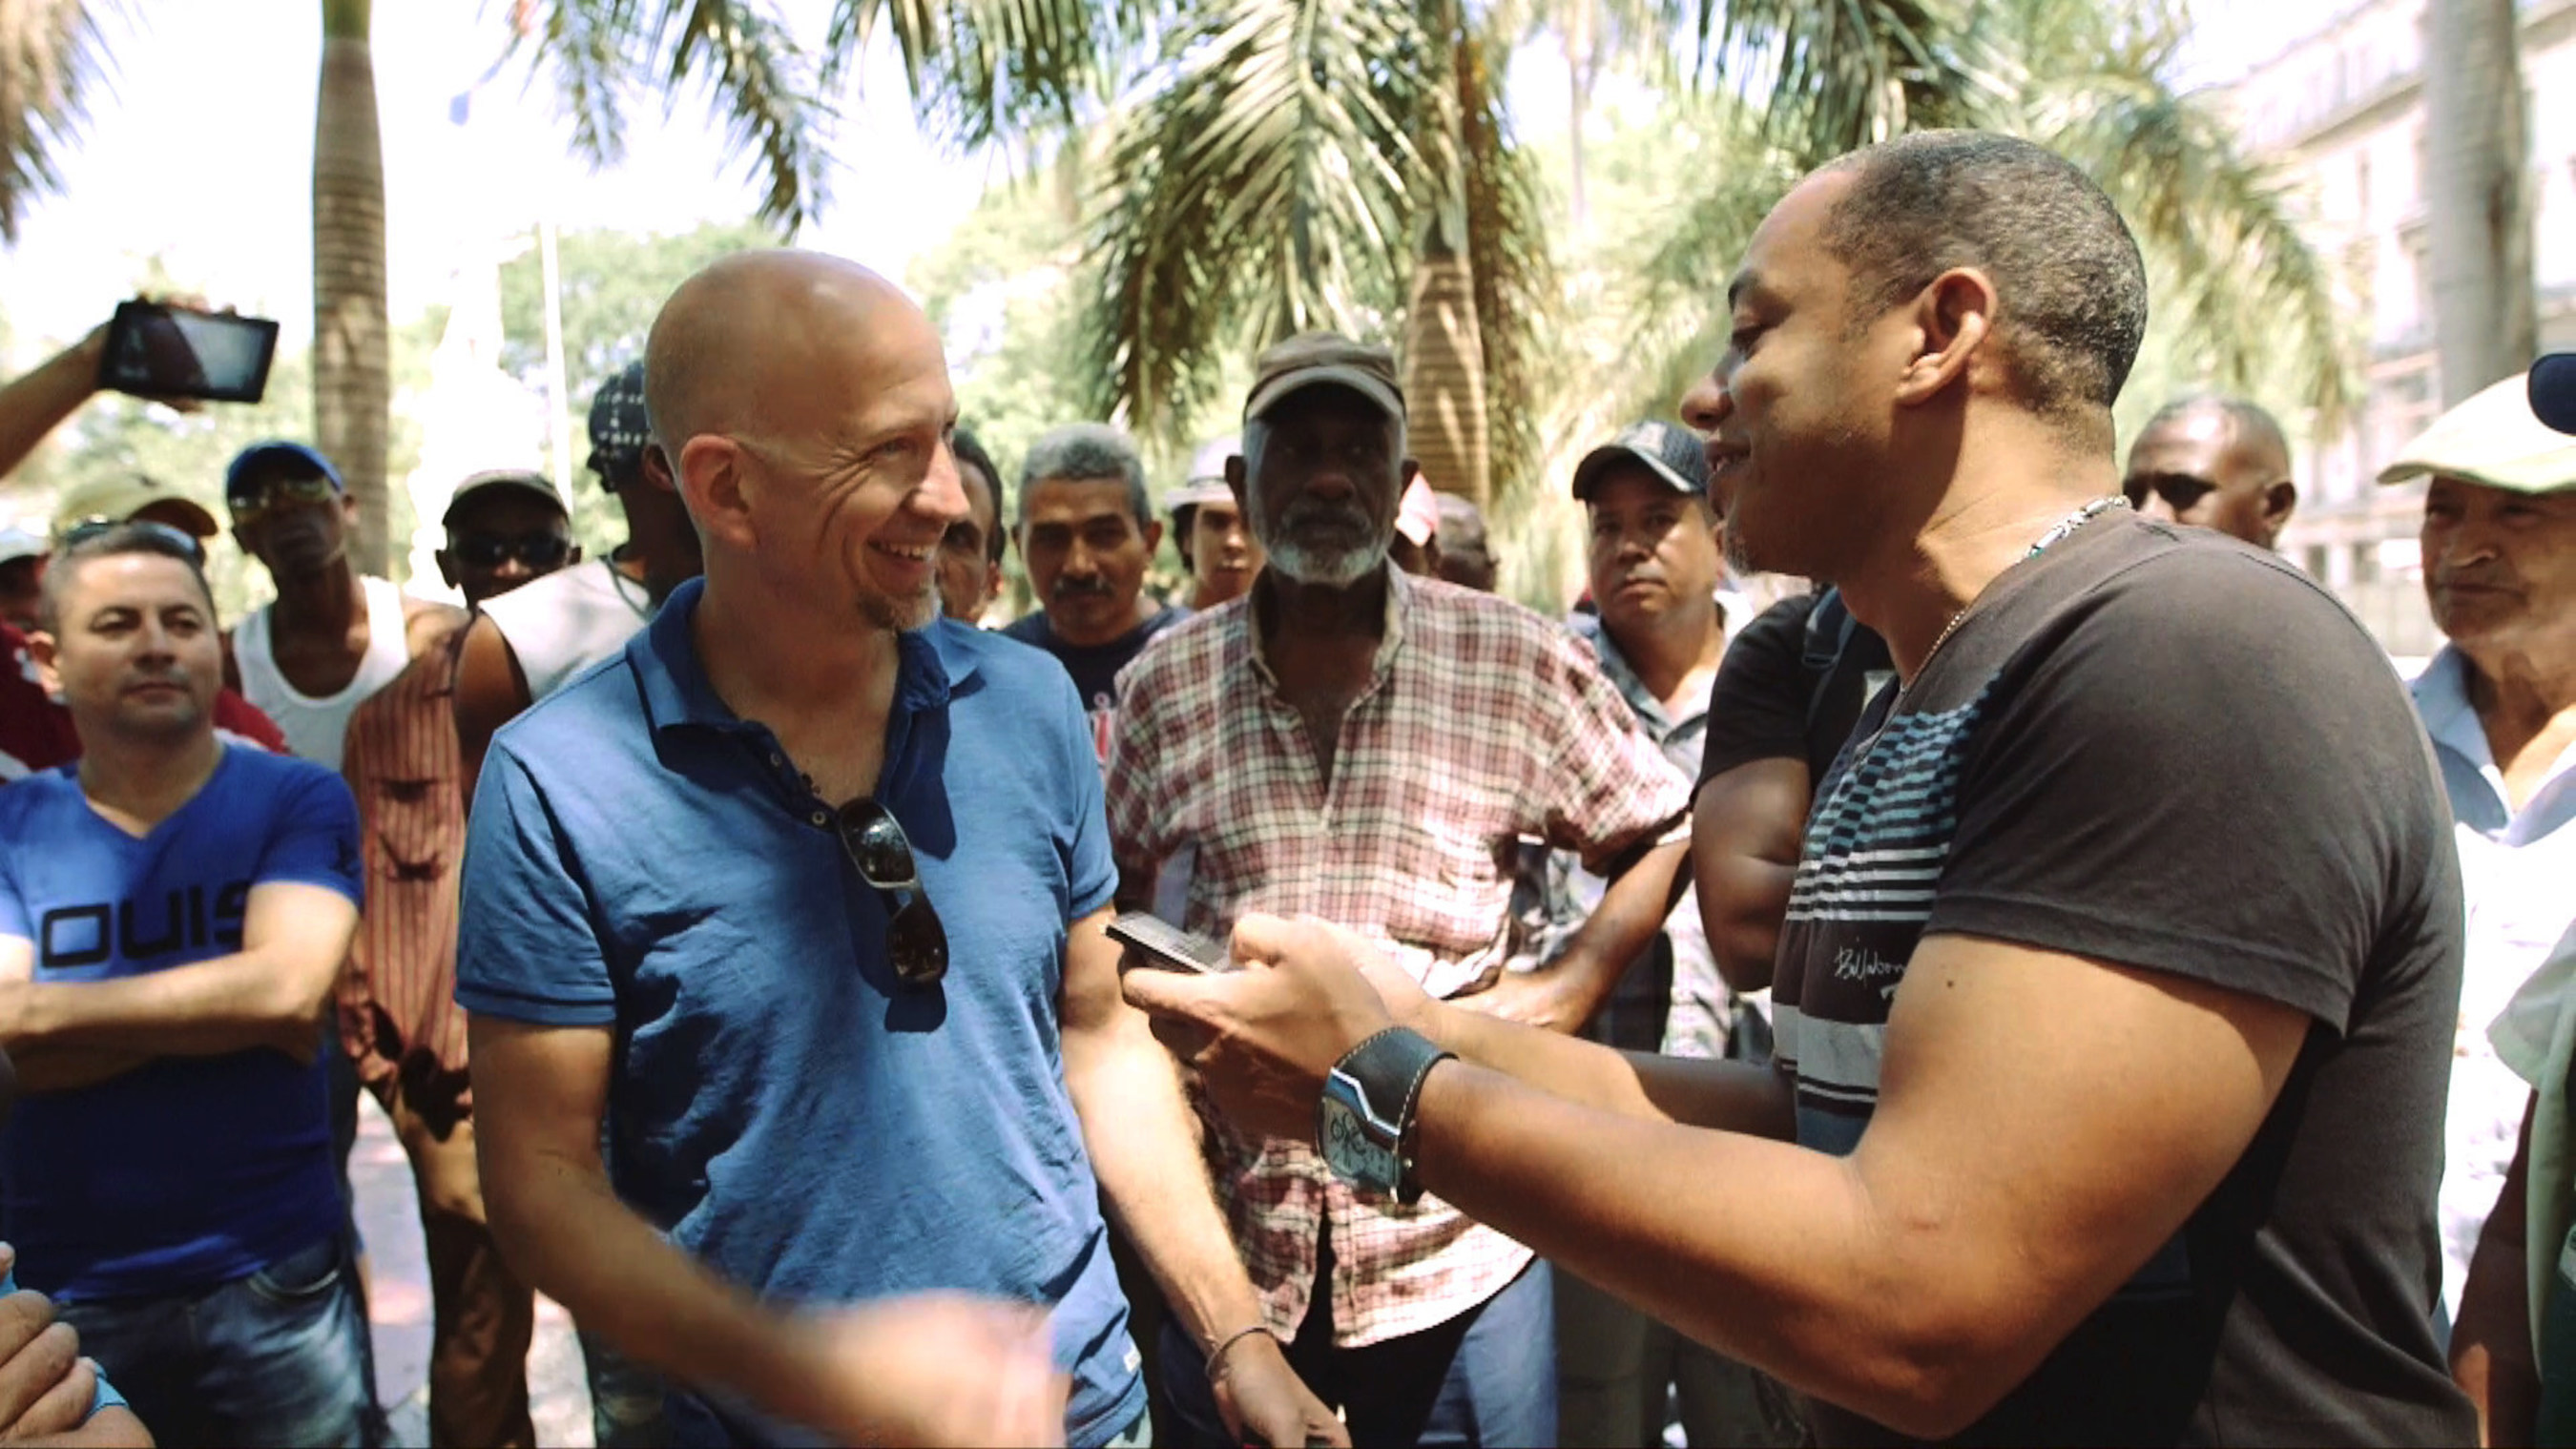 REINVENTING CUBA.  Documentary Host and Correspondent Gerry Hadden (left) meets the people of Cuba in a revealing new documentary about a changing Cuba produced by CCTV America. Cut off from America by decades of hostility, living in conditions of scarcity and political restrictions, the Cubans emerge here as a people making something out of nothing with whatever is at hand.  Hadden portrays vibrant, hopeful, and resourceful characters facing enormous challenges in today's Cuba.